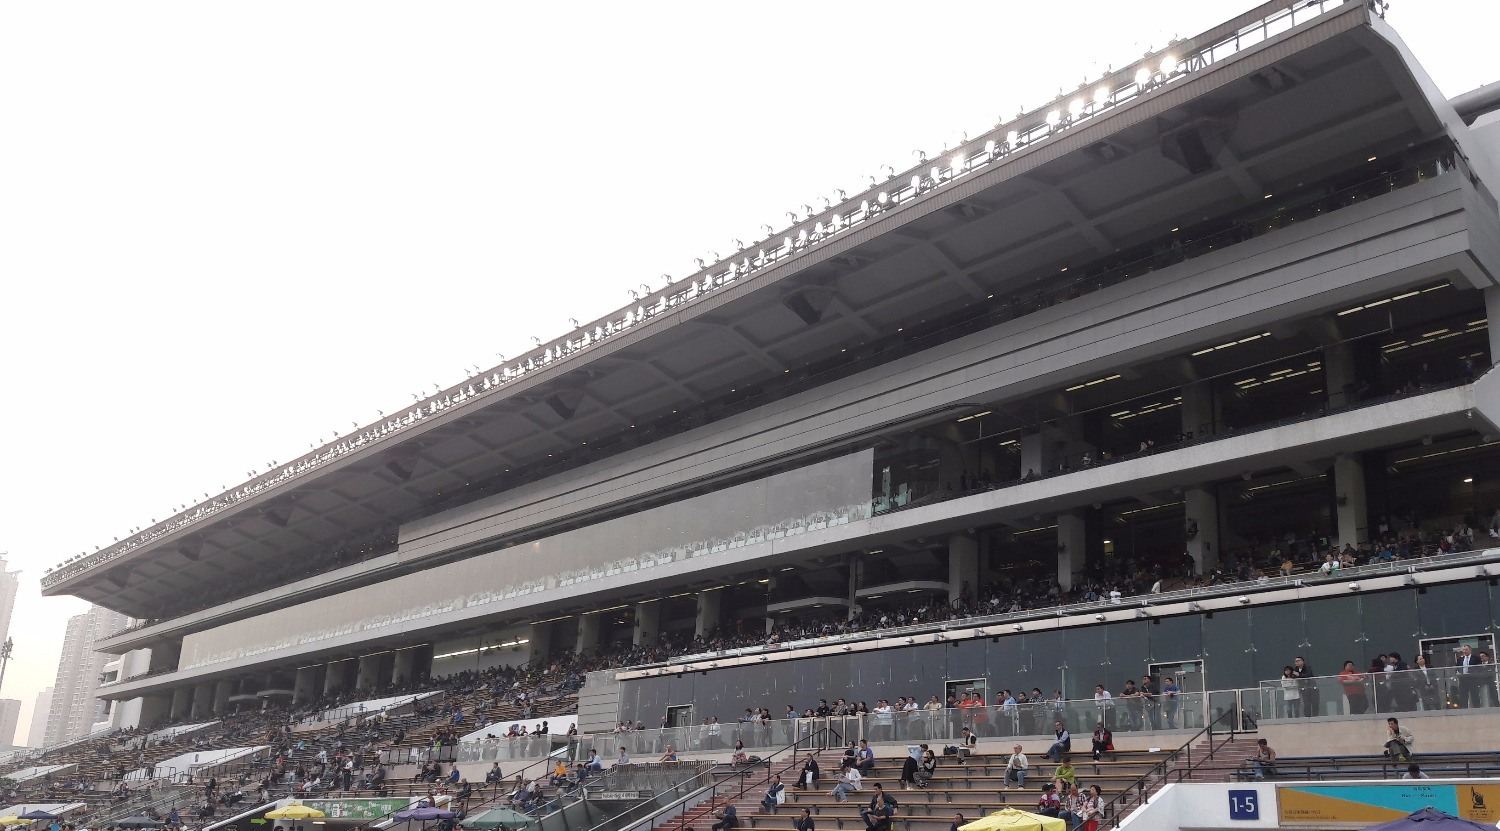 Sha Tin Racecourse (7/F & 5/F)